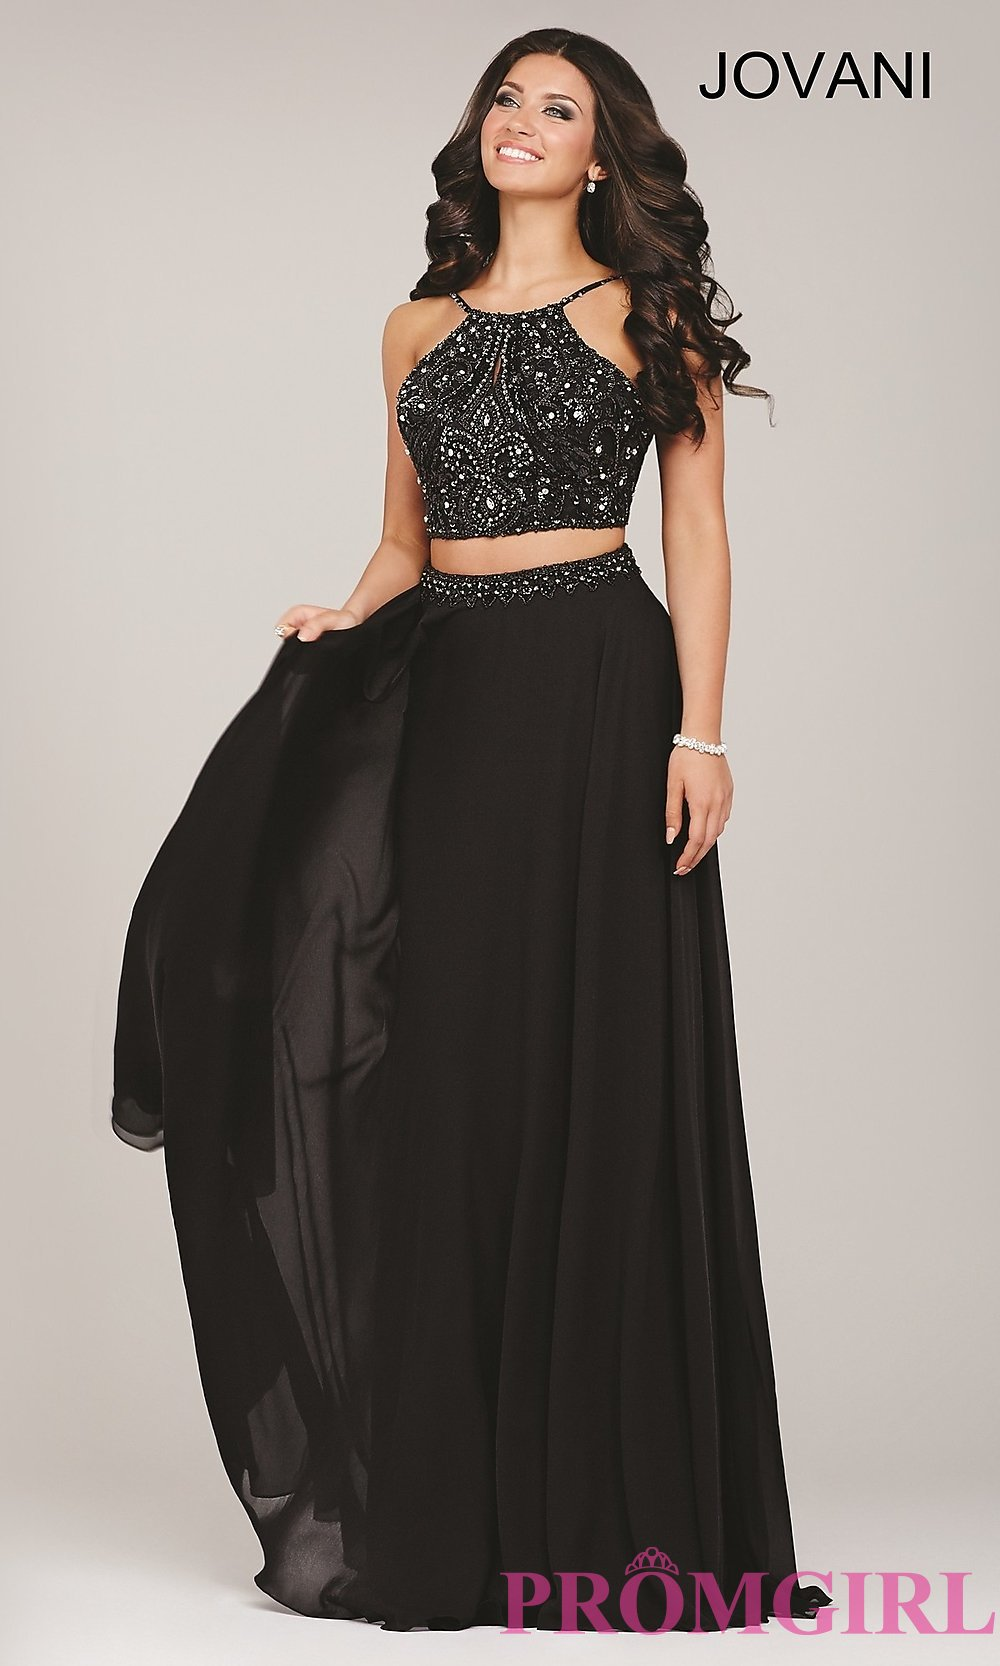 a2c60b30d02 Black 2 Piece Homecoming Dresses - Data Dynamic AG